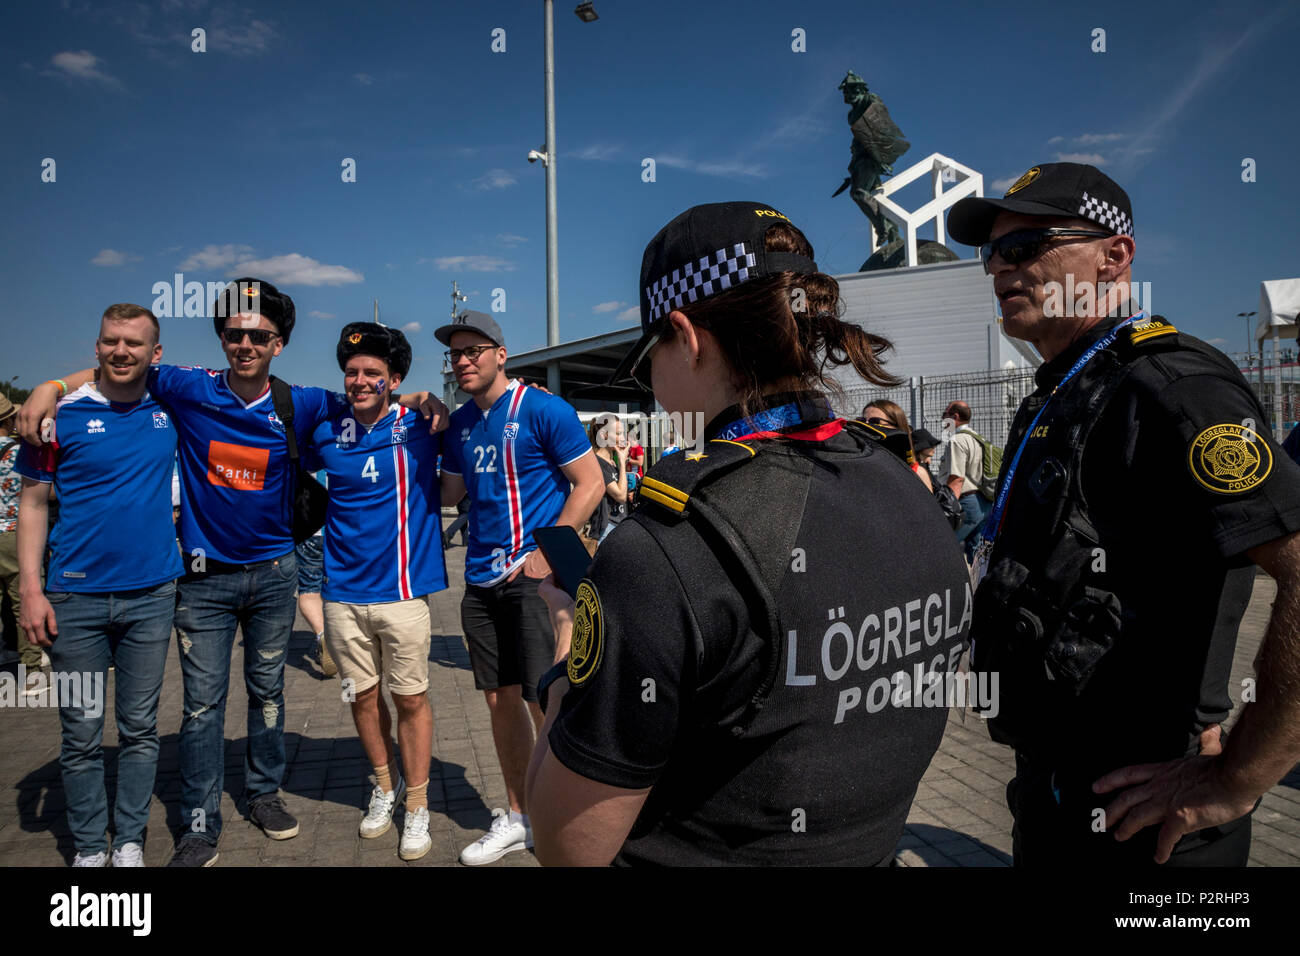 Moscow, Russia. 16th June, 2018. Iceland fans and police before start the 2018 FIFA World Cup Russia Group D match between Argentina and Iceland at the Spartak Stadium in Moscow, Russia Credit: Nikolay Vinokurov/Alamy Live News - Stock Image